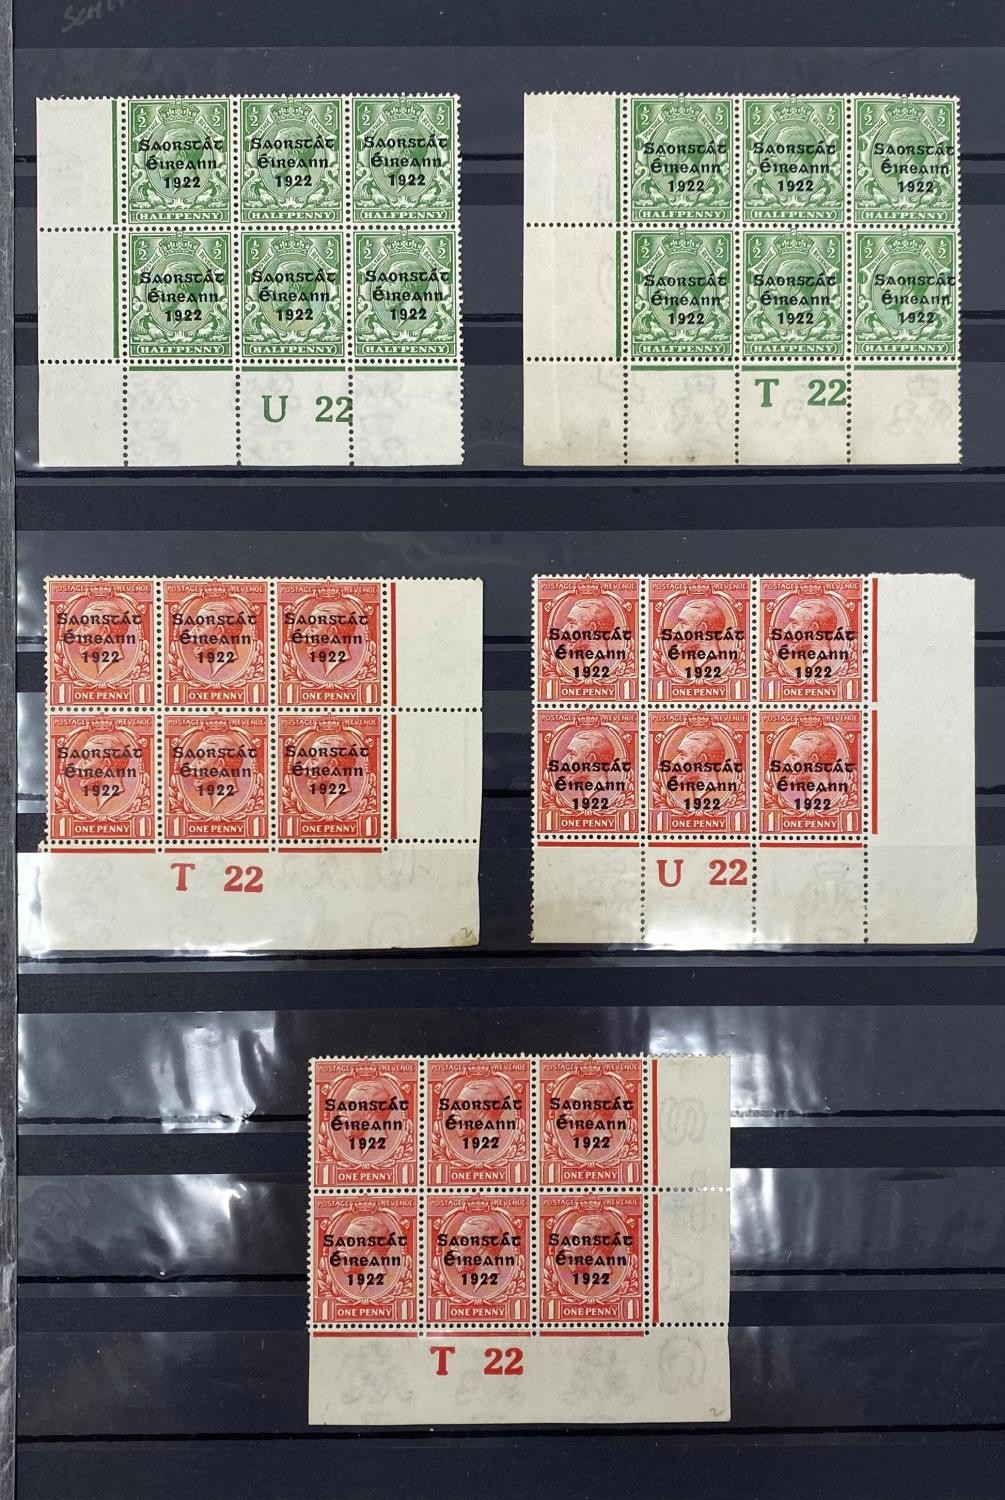 Ireland 1922 GV overprints selection of 21 plate number blocks and strips with values form 1/2d to